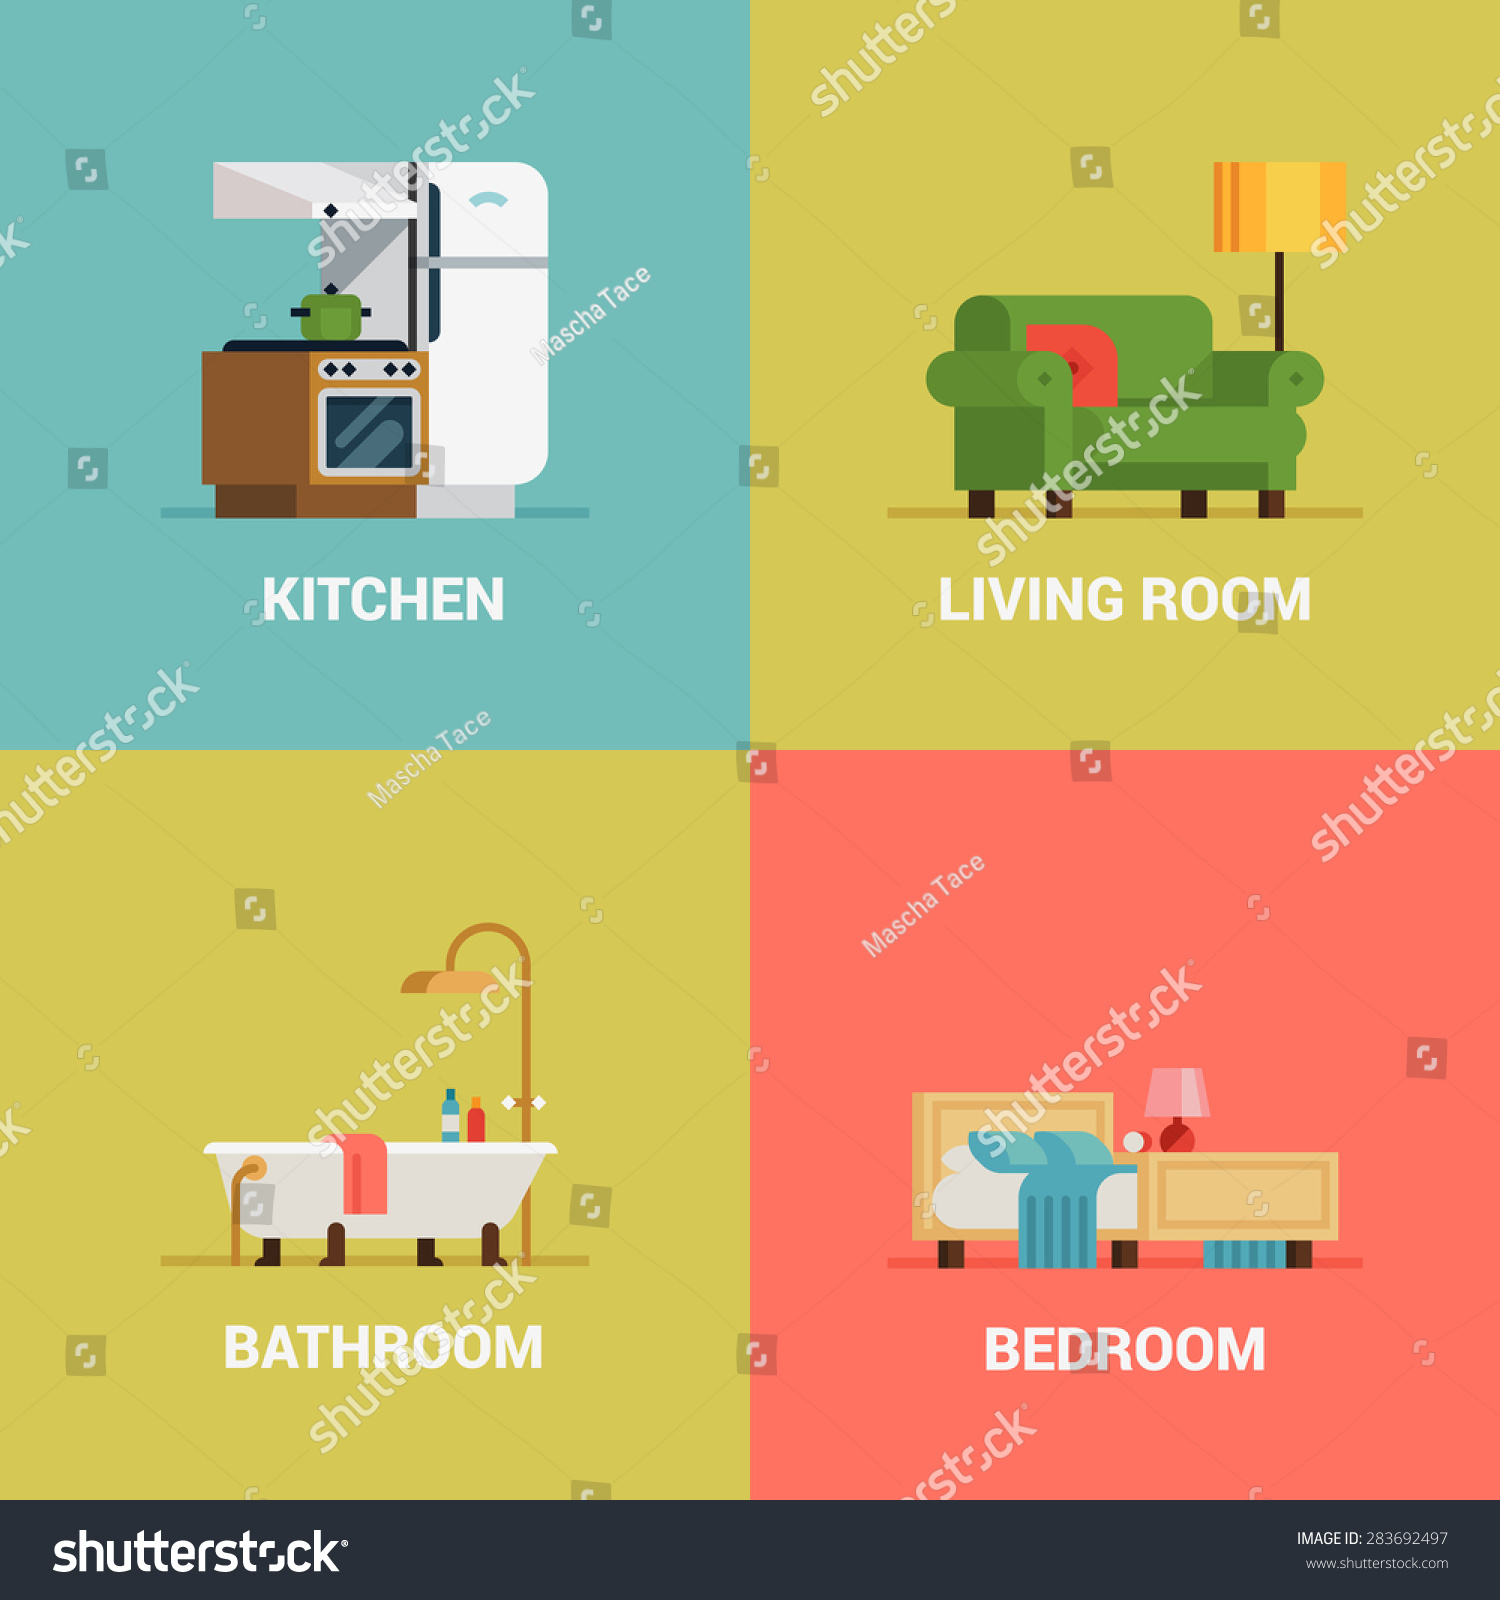 Set Of Lovely And Colorful Vector Interior Design Room Types Web Icons In Trendy Flat